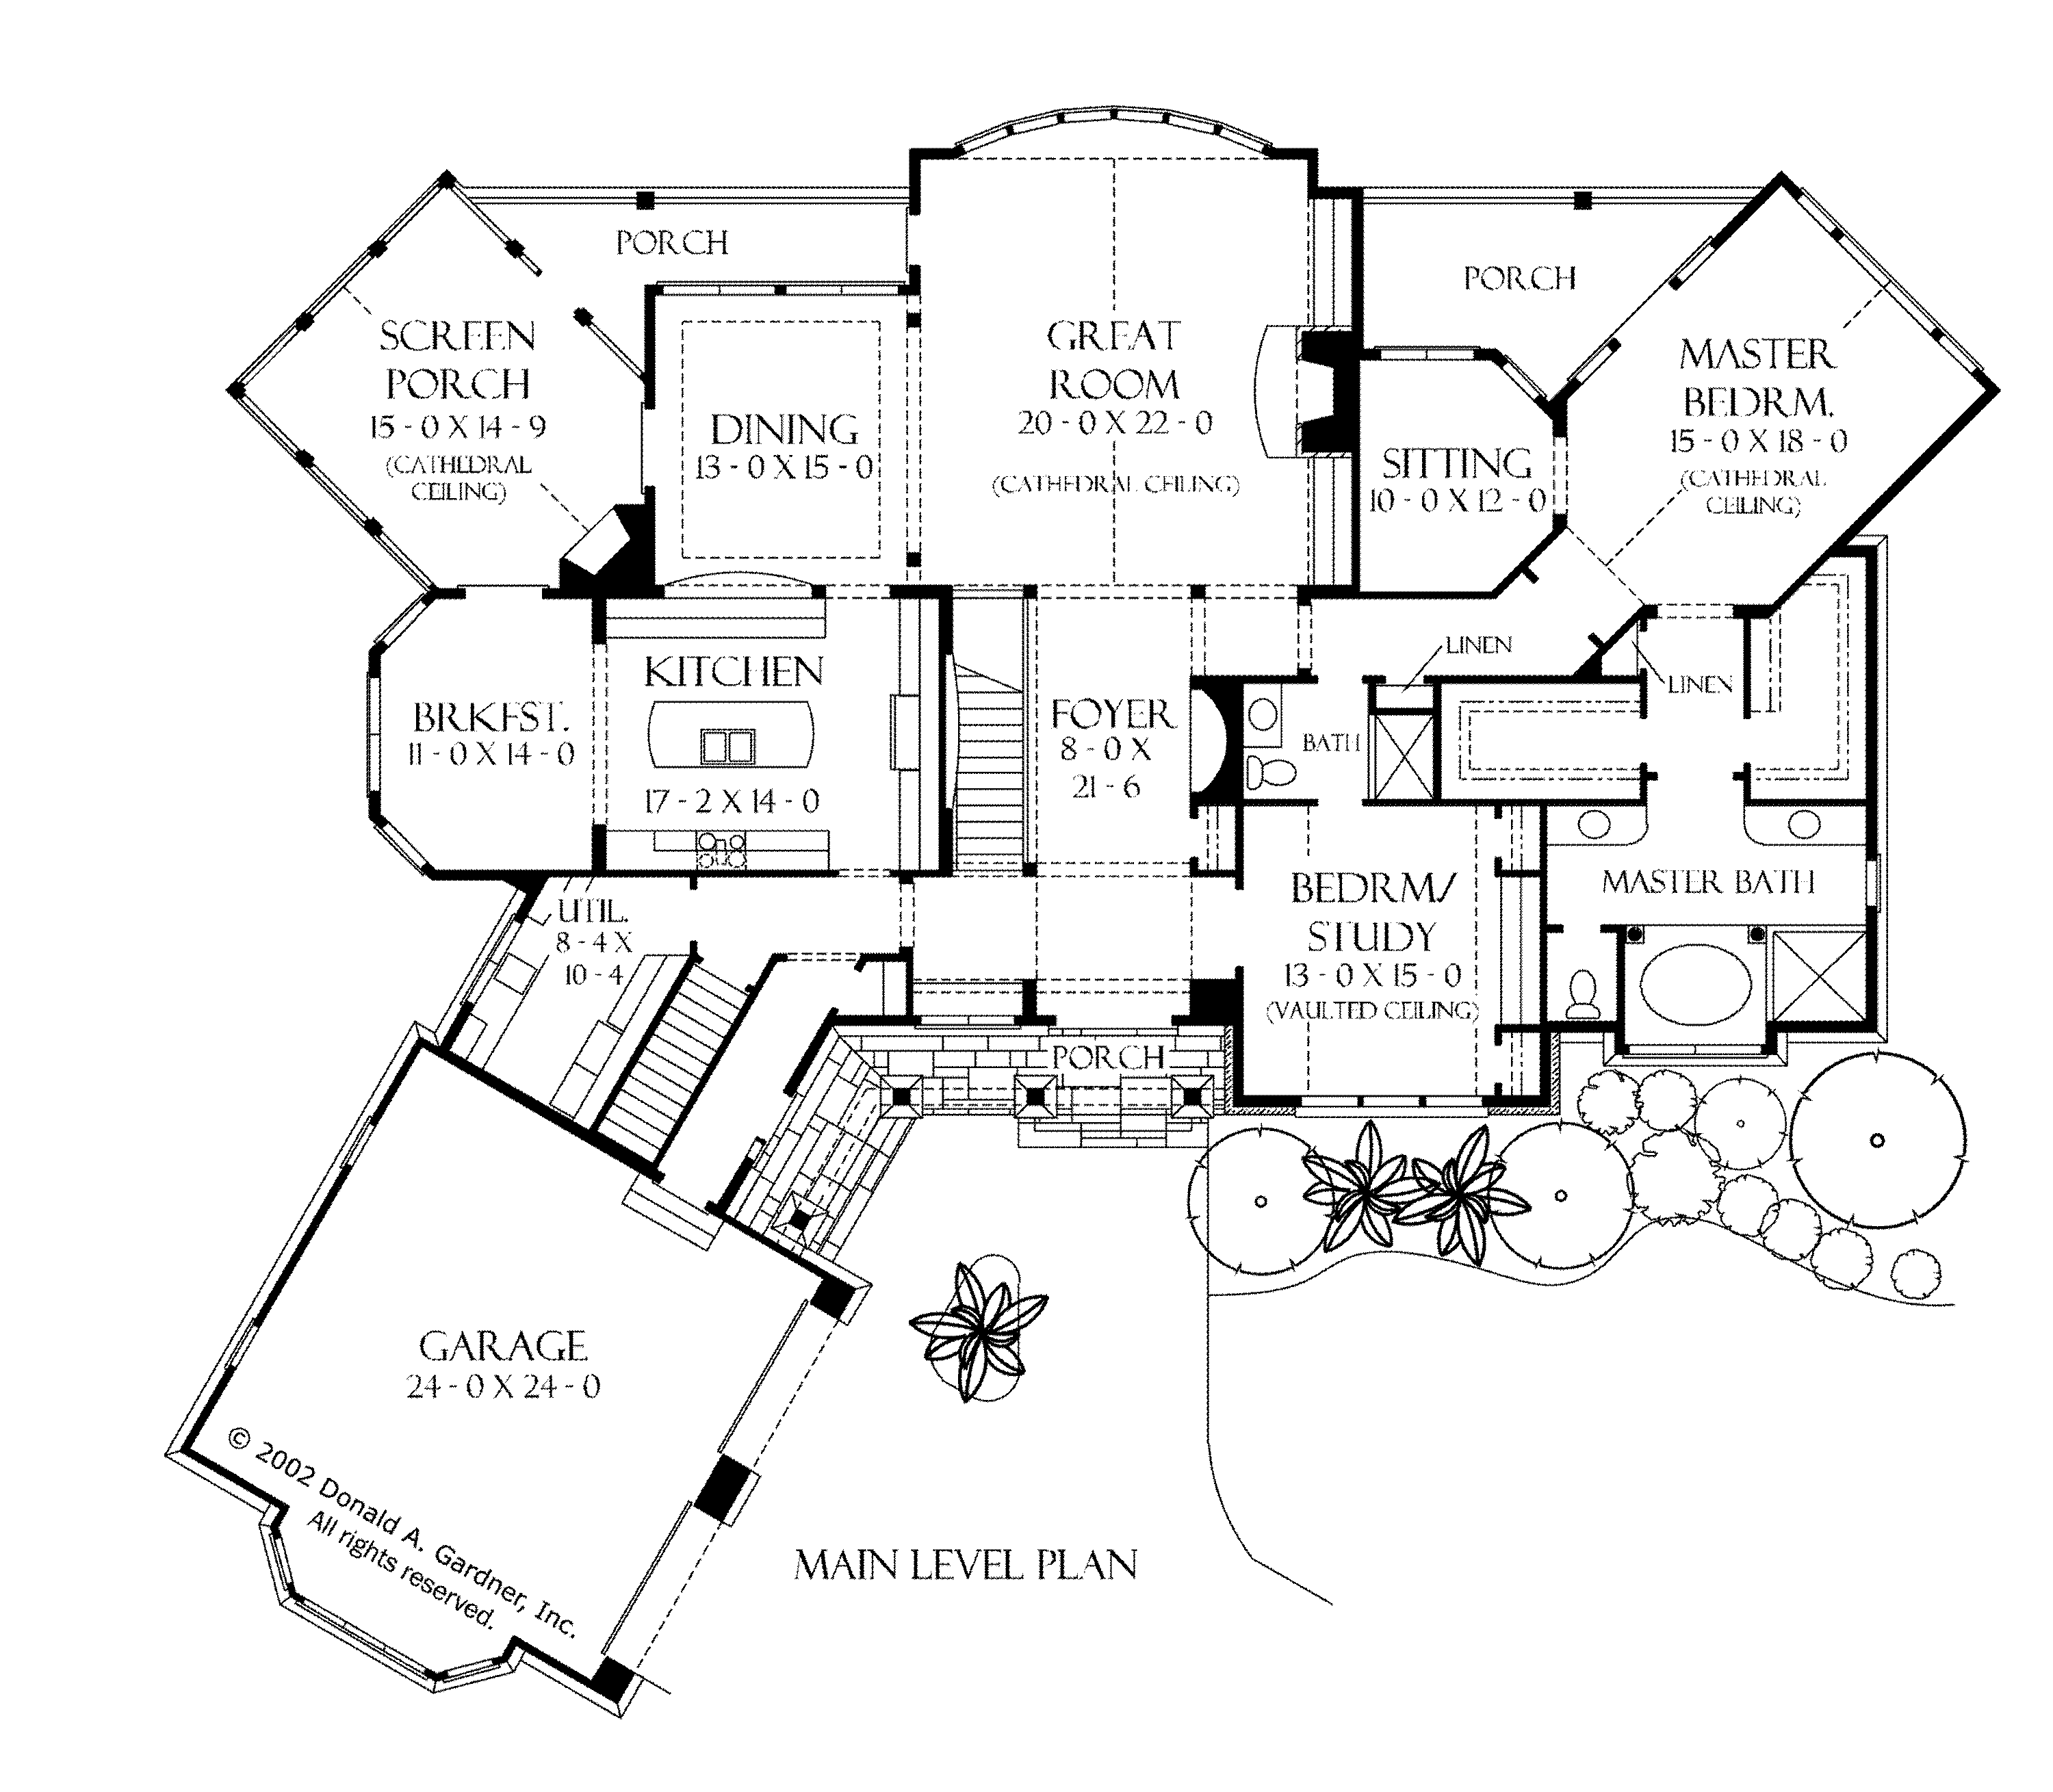 Architecture craftsman style homes floor plans story for Classic cottage house plans